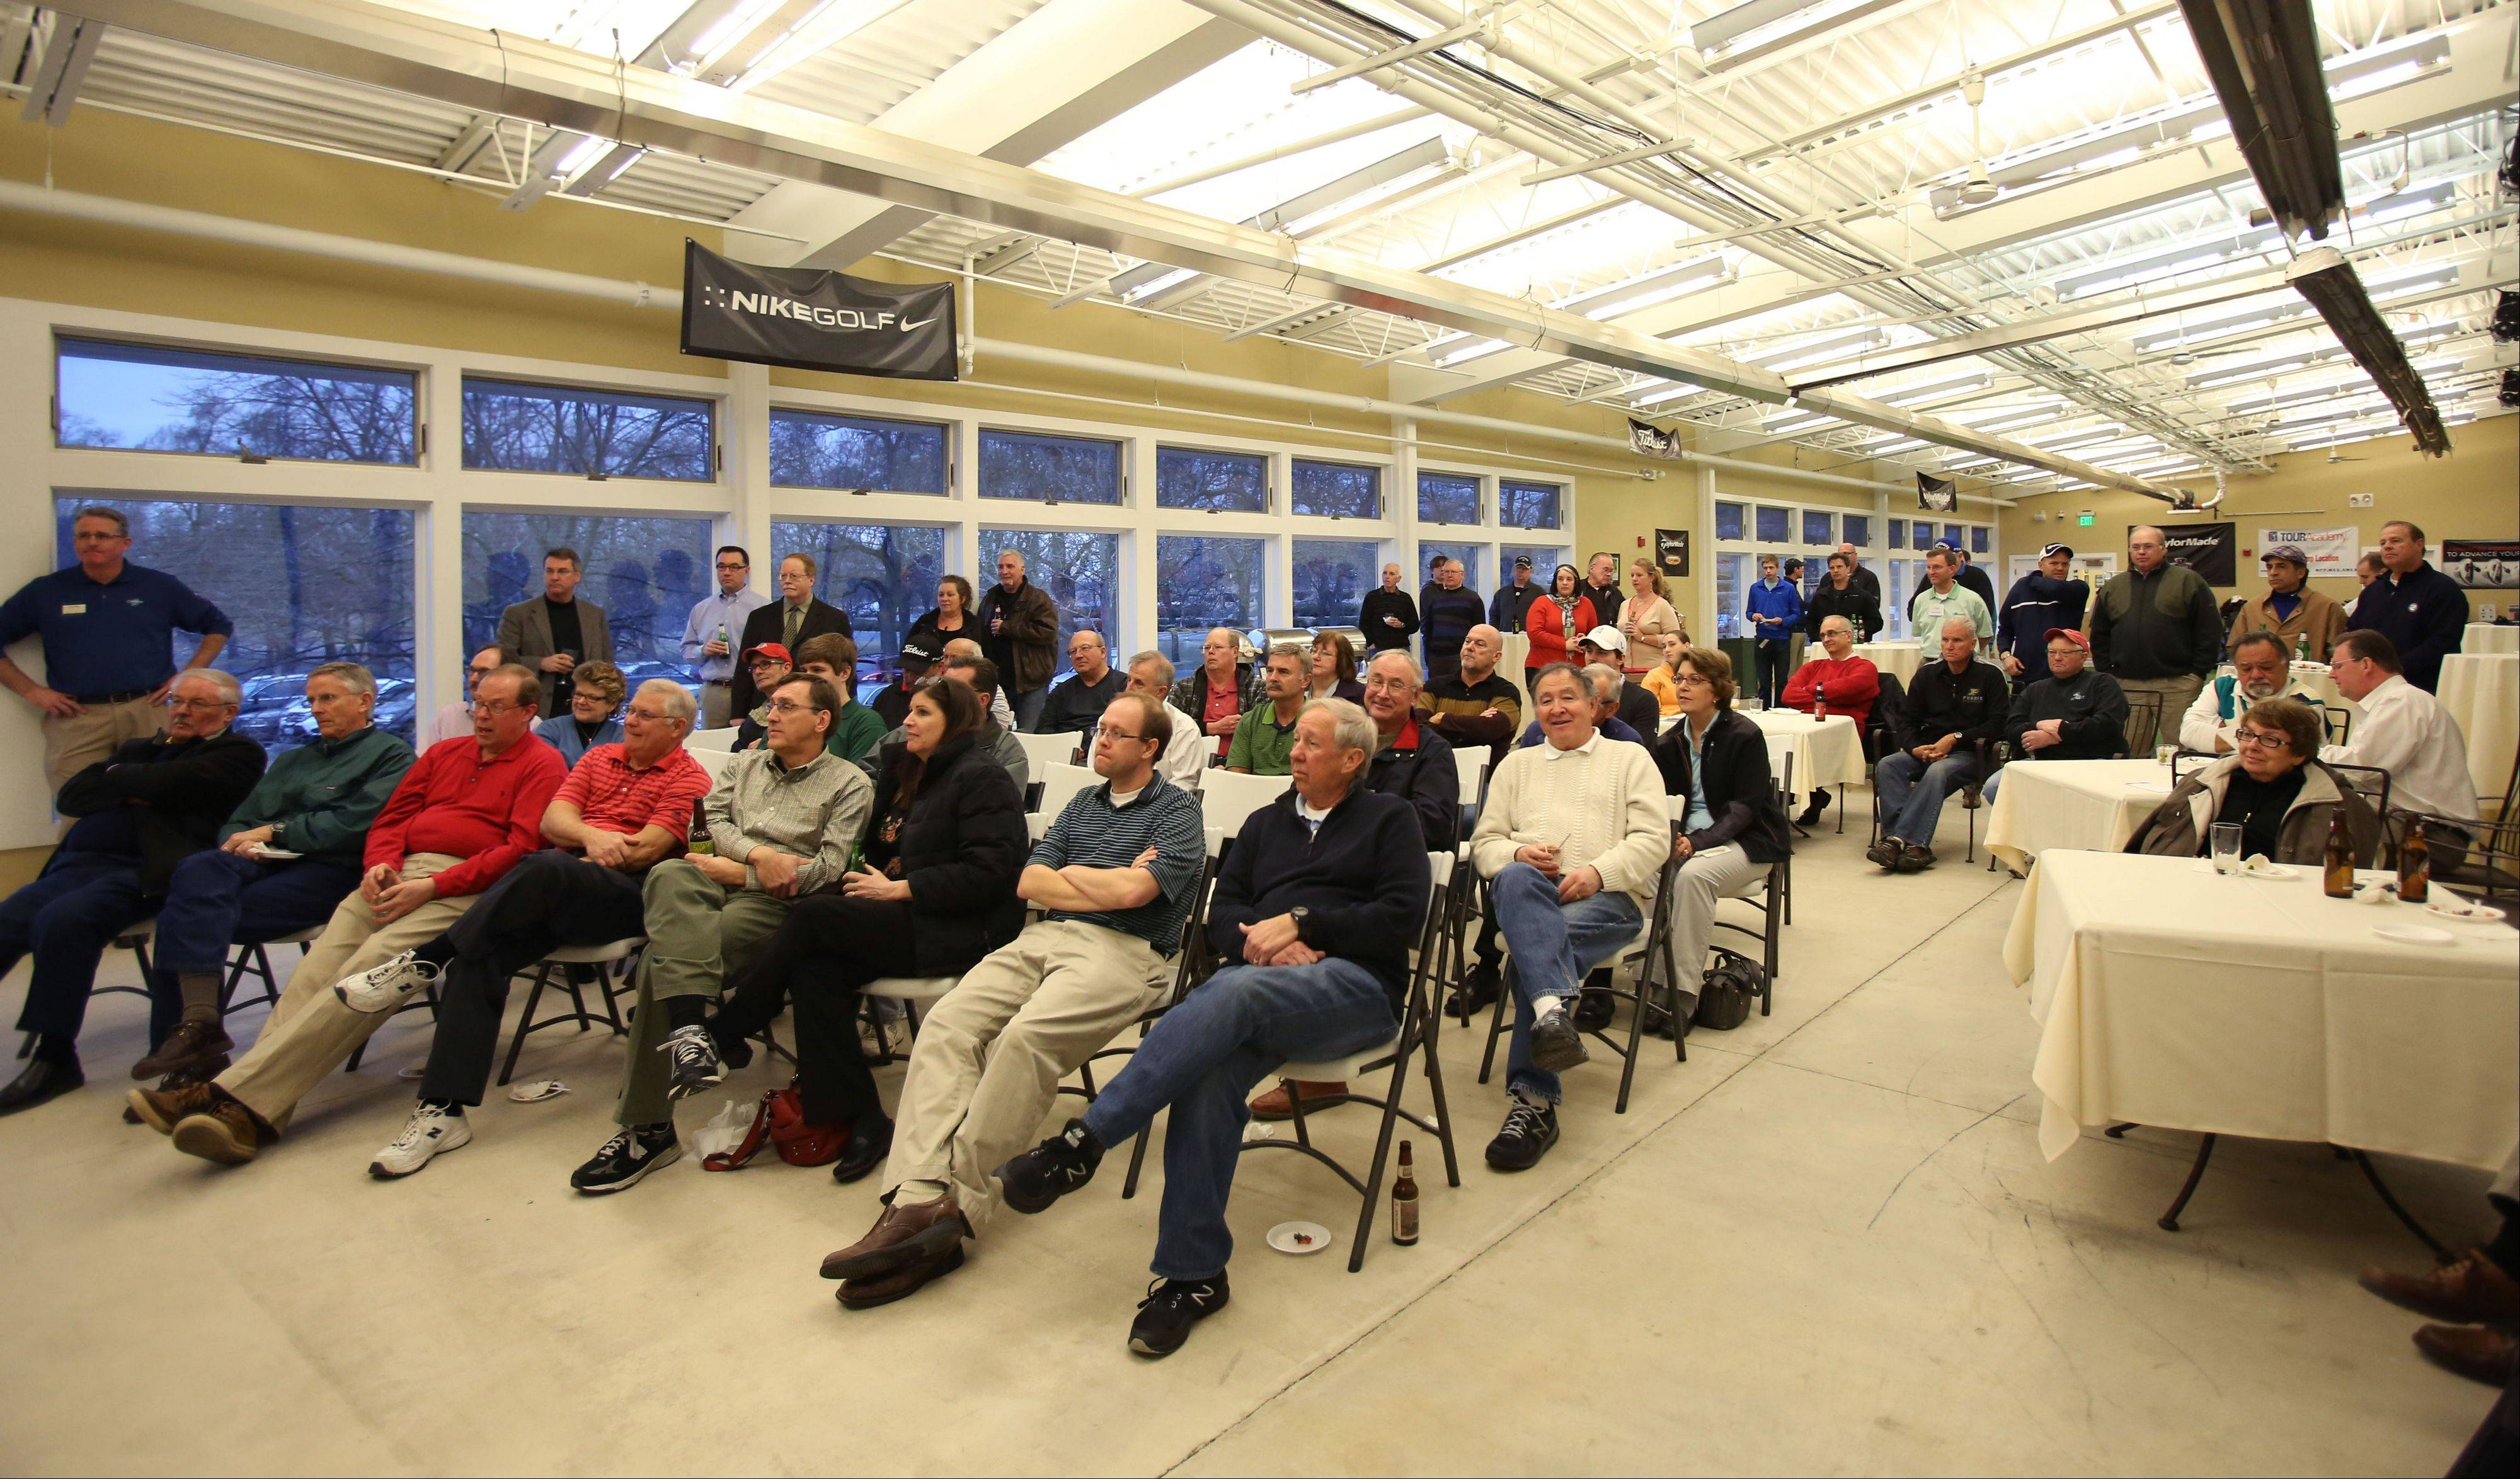 Participants listen to the speakers during the Subscriber Total Access event Monday at the Cantigny Golf Academy at Cantigny Park in Wheaton.